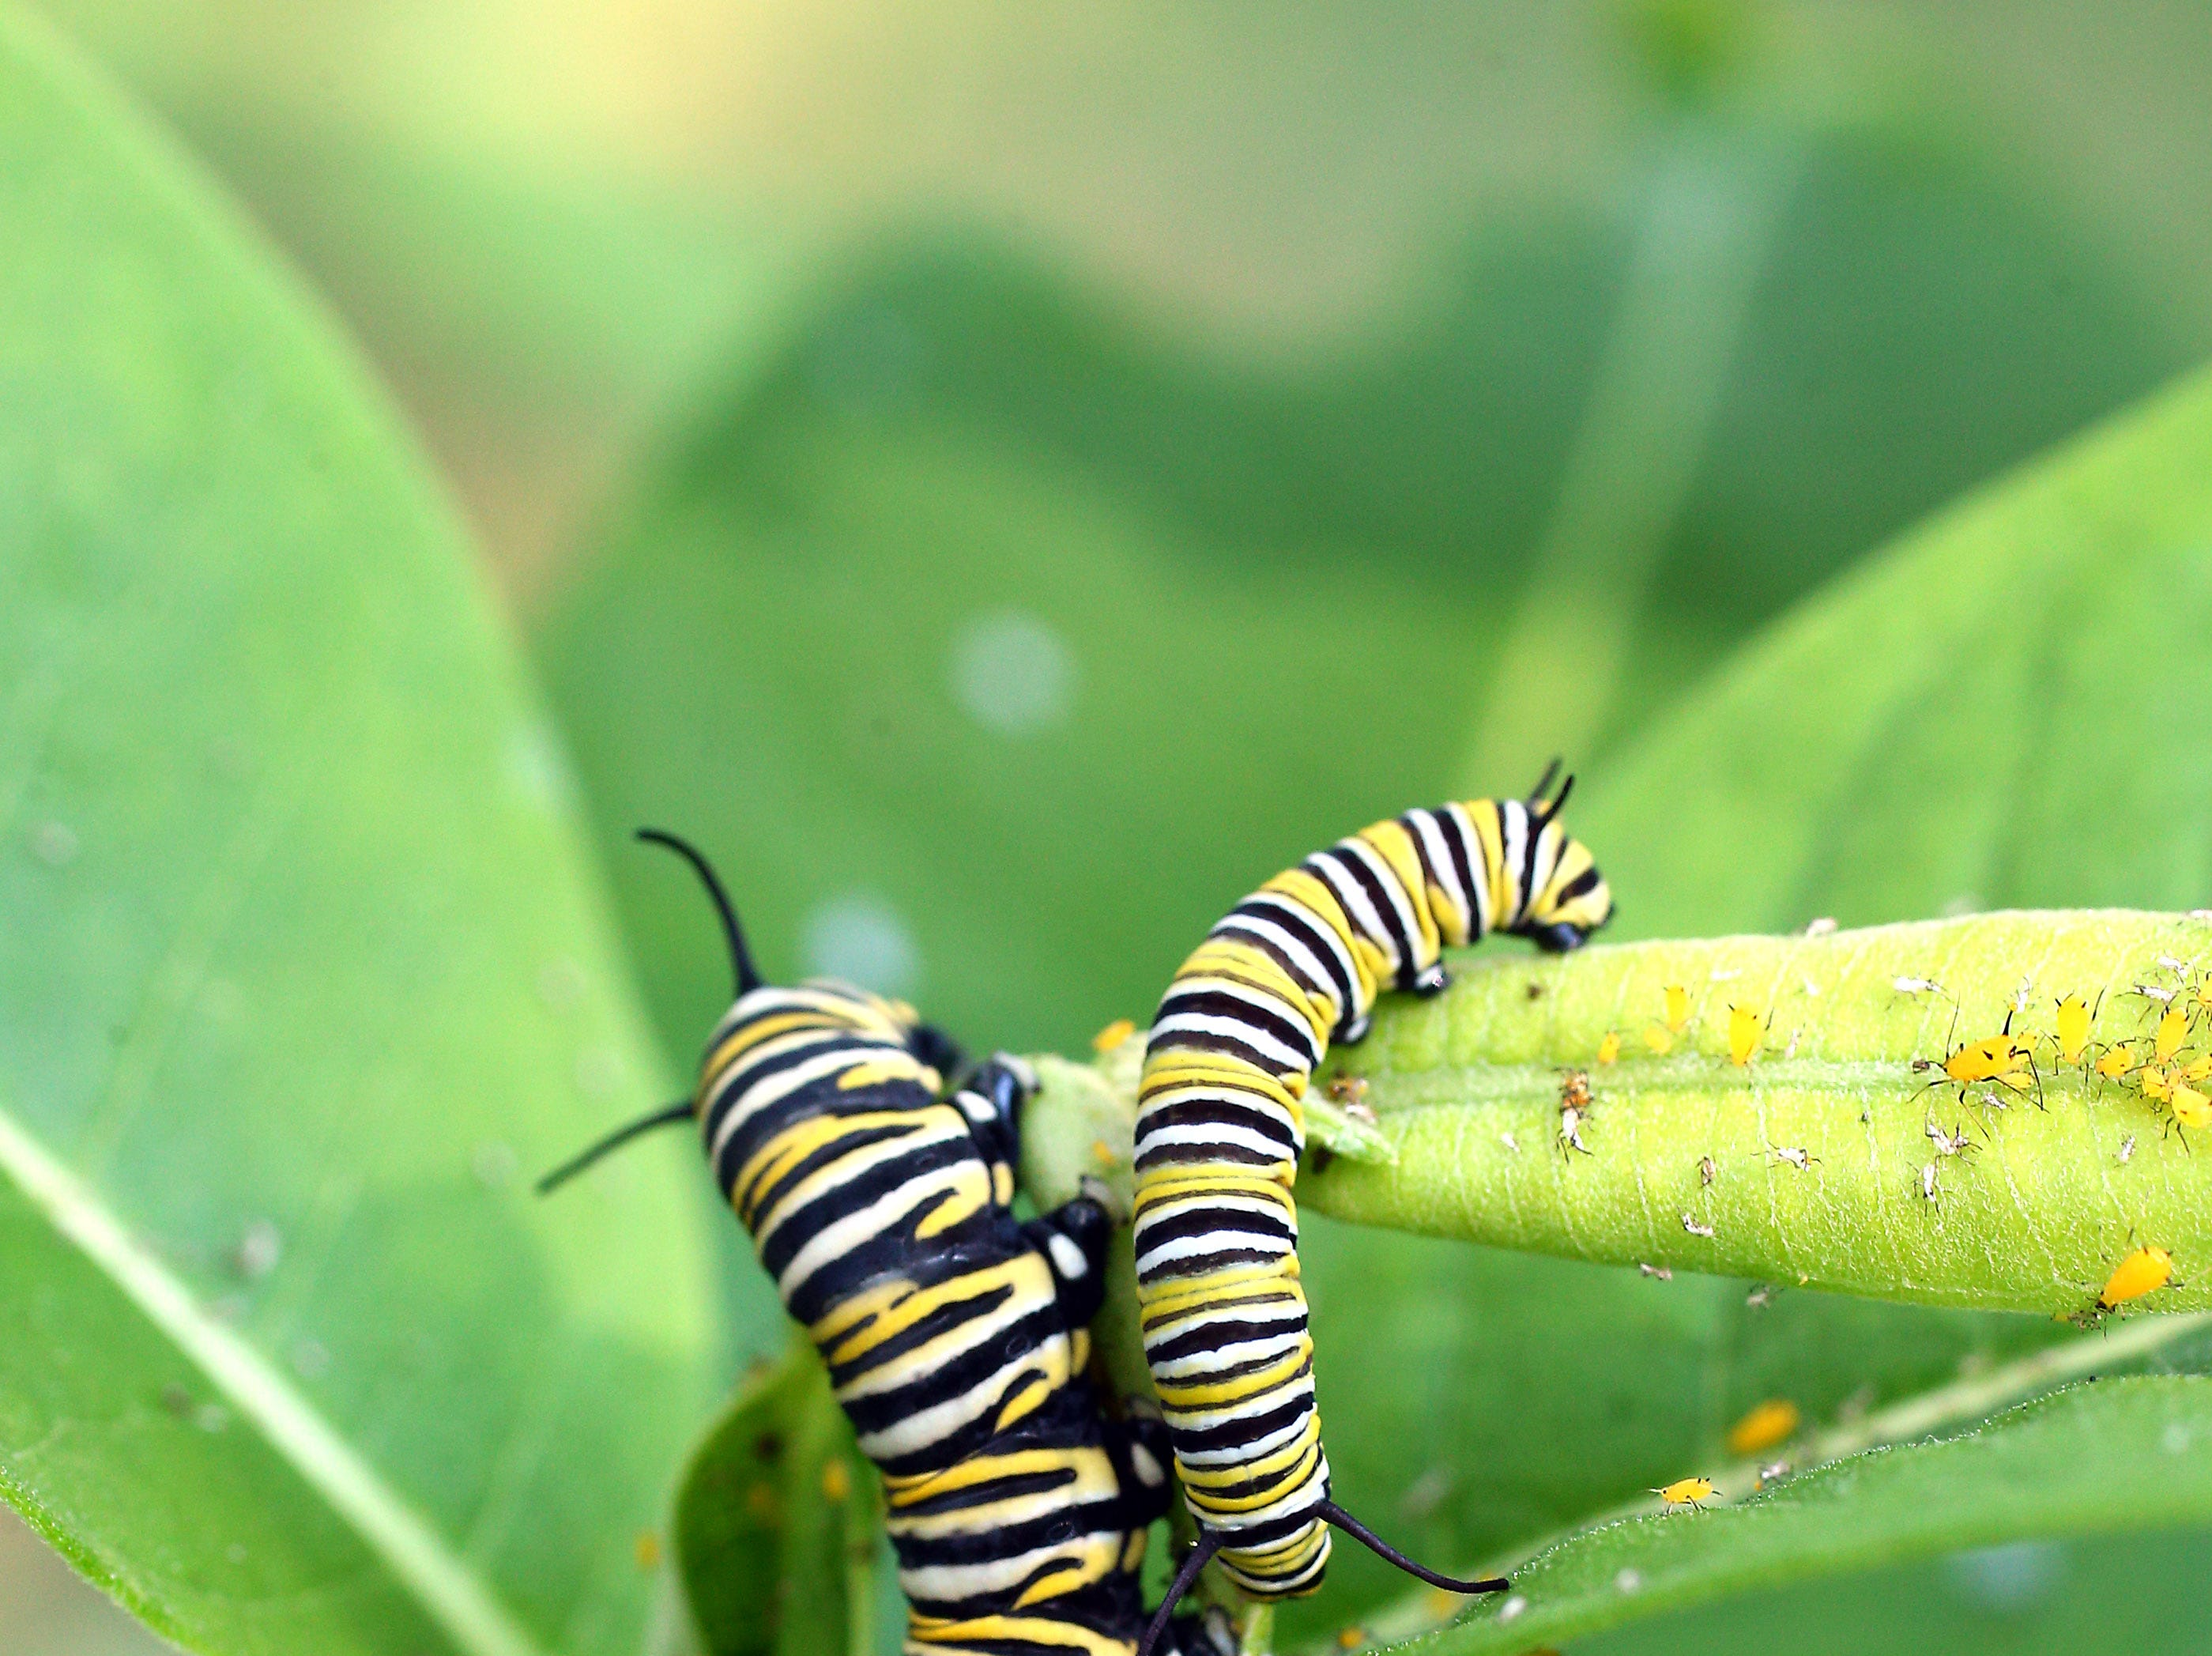 Two Monarch caterpillars on a milkweed plant soon to build their chrysalis' and then emerge 10 days later into  Monarch butterflies. From there, they'll fly south in search of food and mates. August 29, 2018, Morristown, NJ